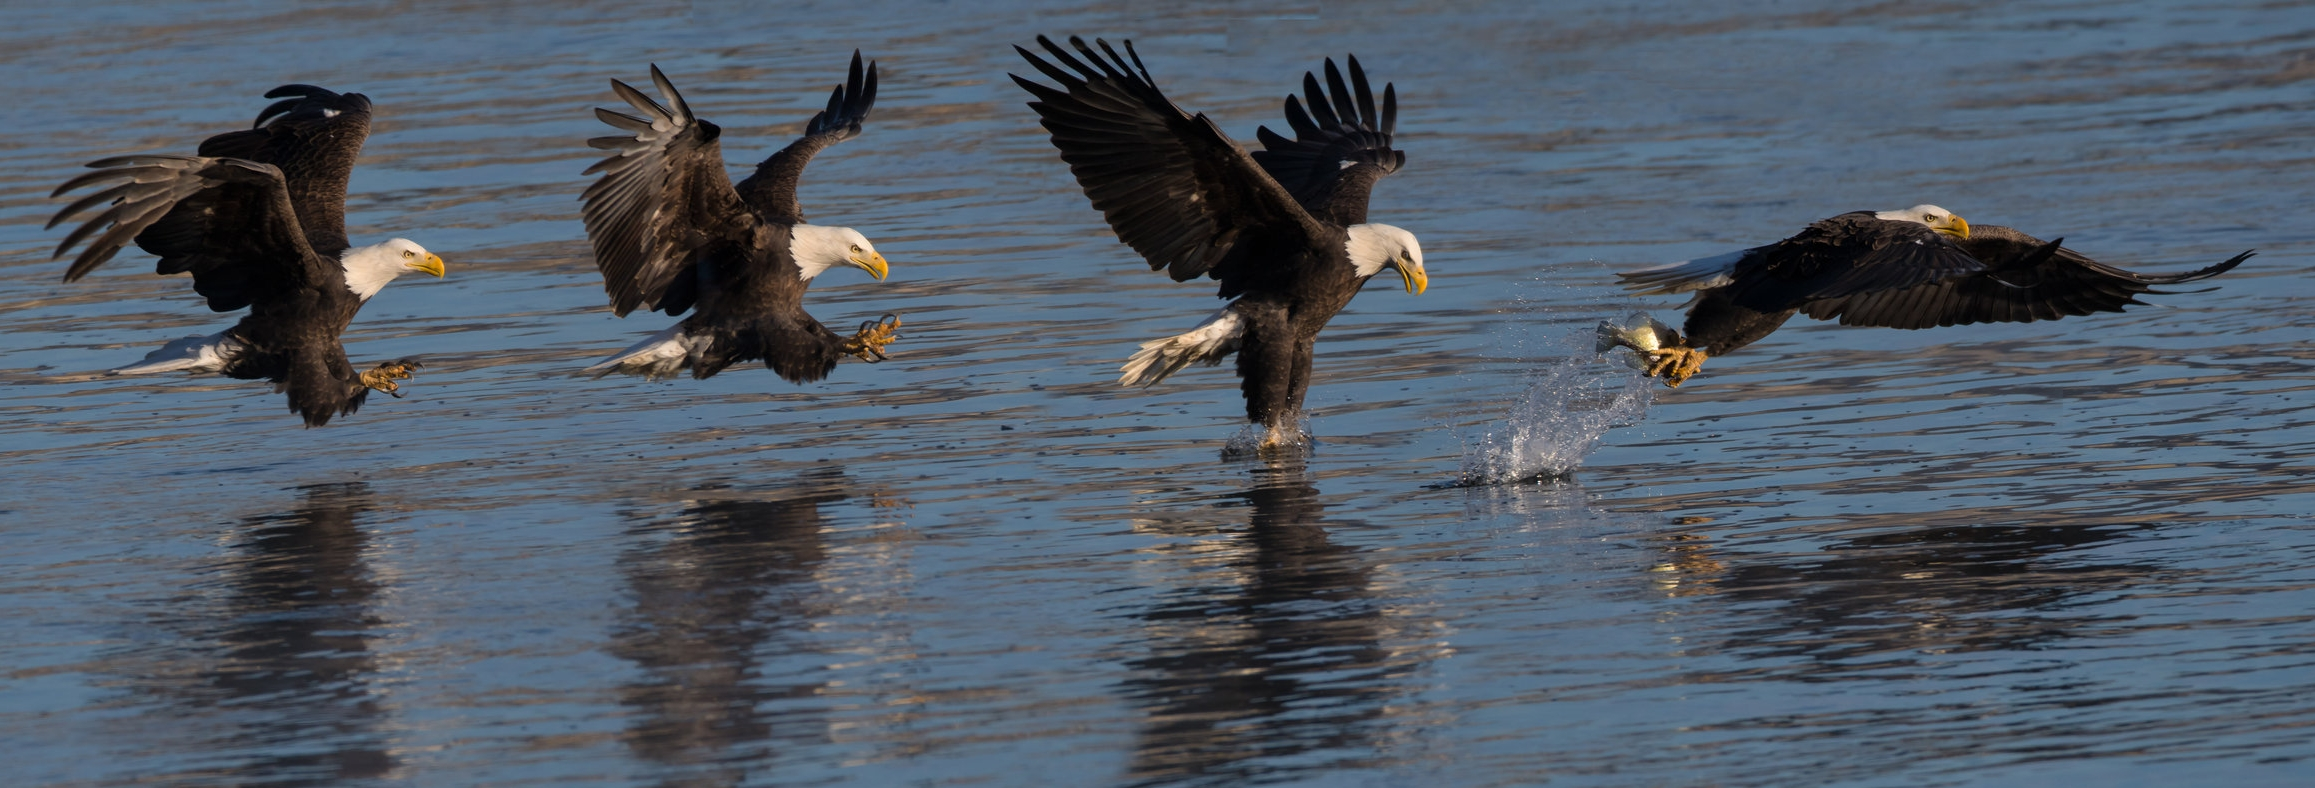 Eagle fishing at the Coniwingo Dam in Maryland.